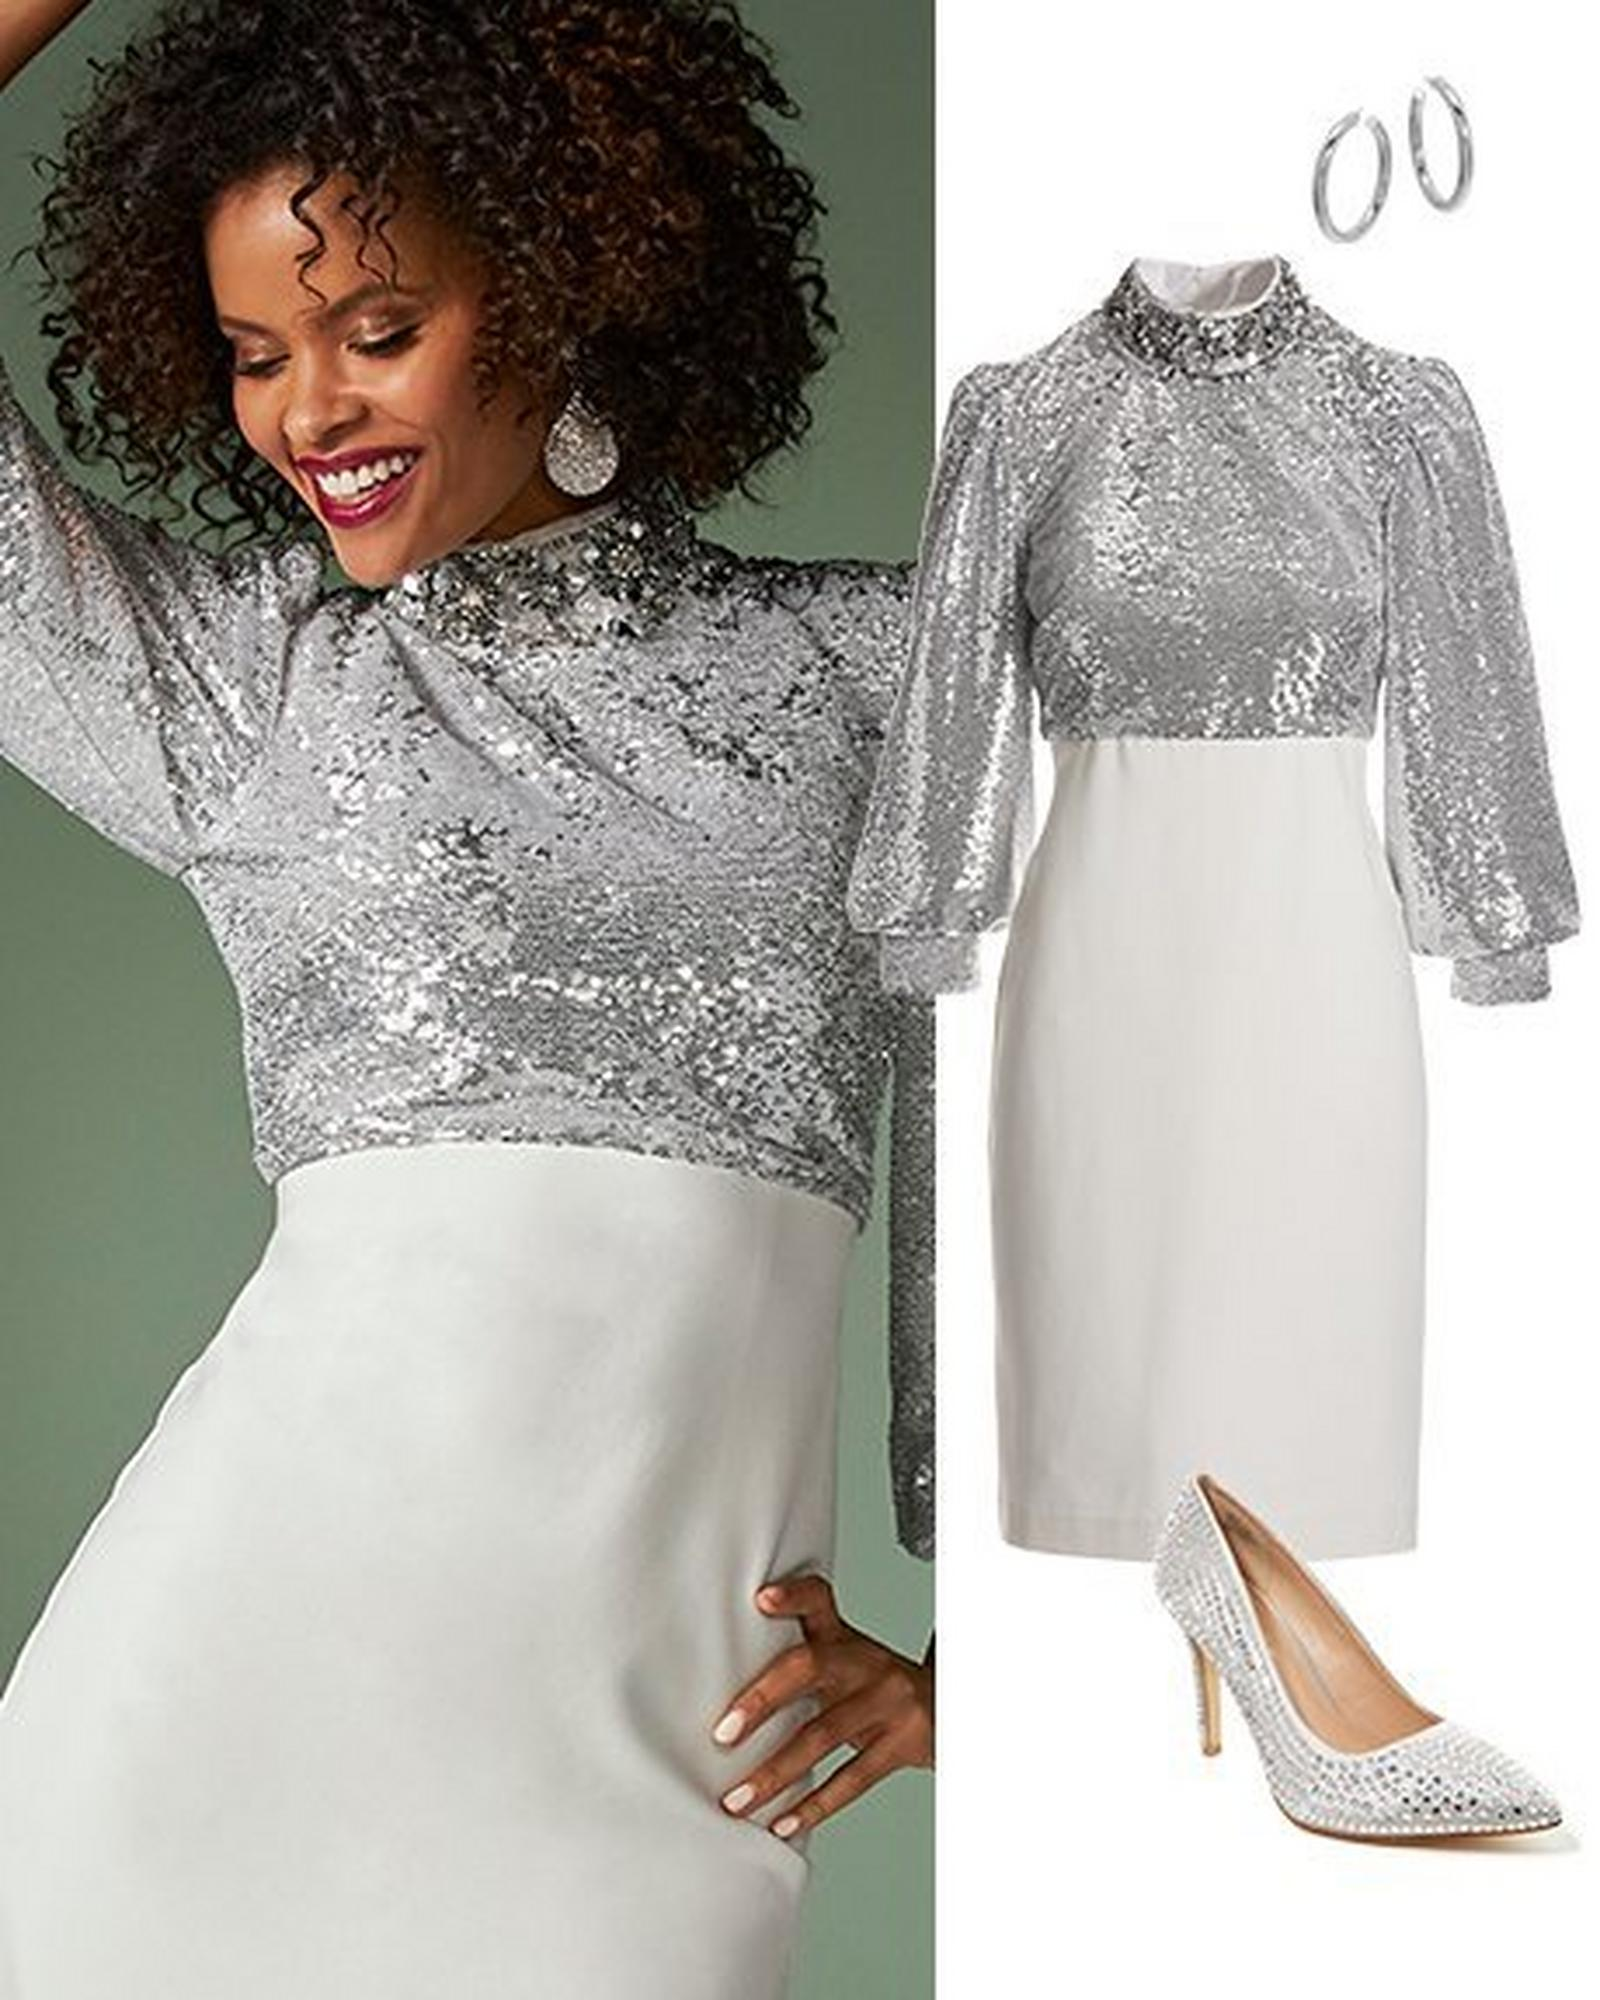 model wearing a silver sequin embellished long-sleeve sheath dress with a white skirted bottom. to the right: the same dress alongside silver hoop earrings and silver rhinestone embellished pumps.